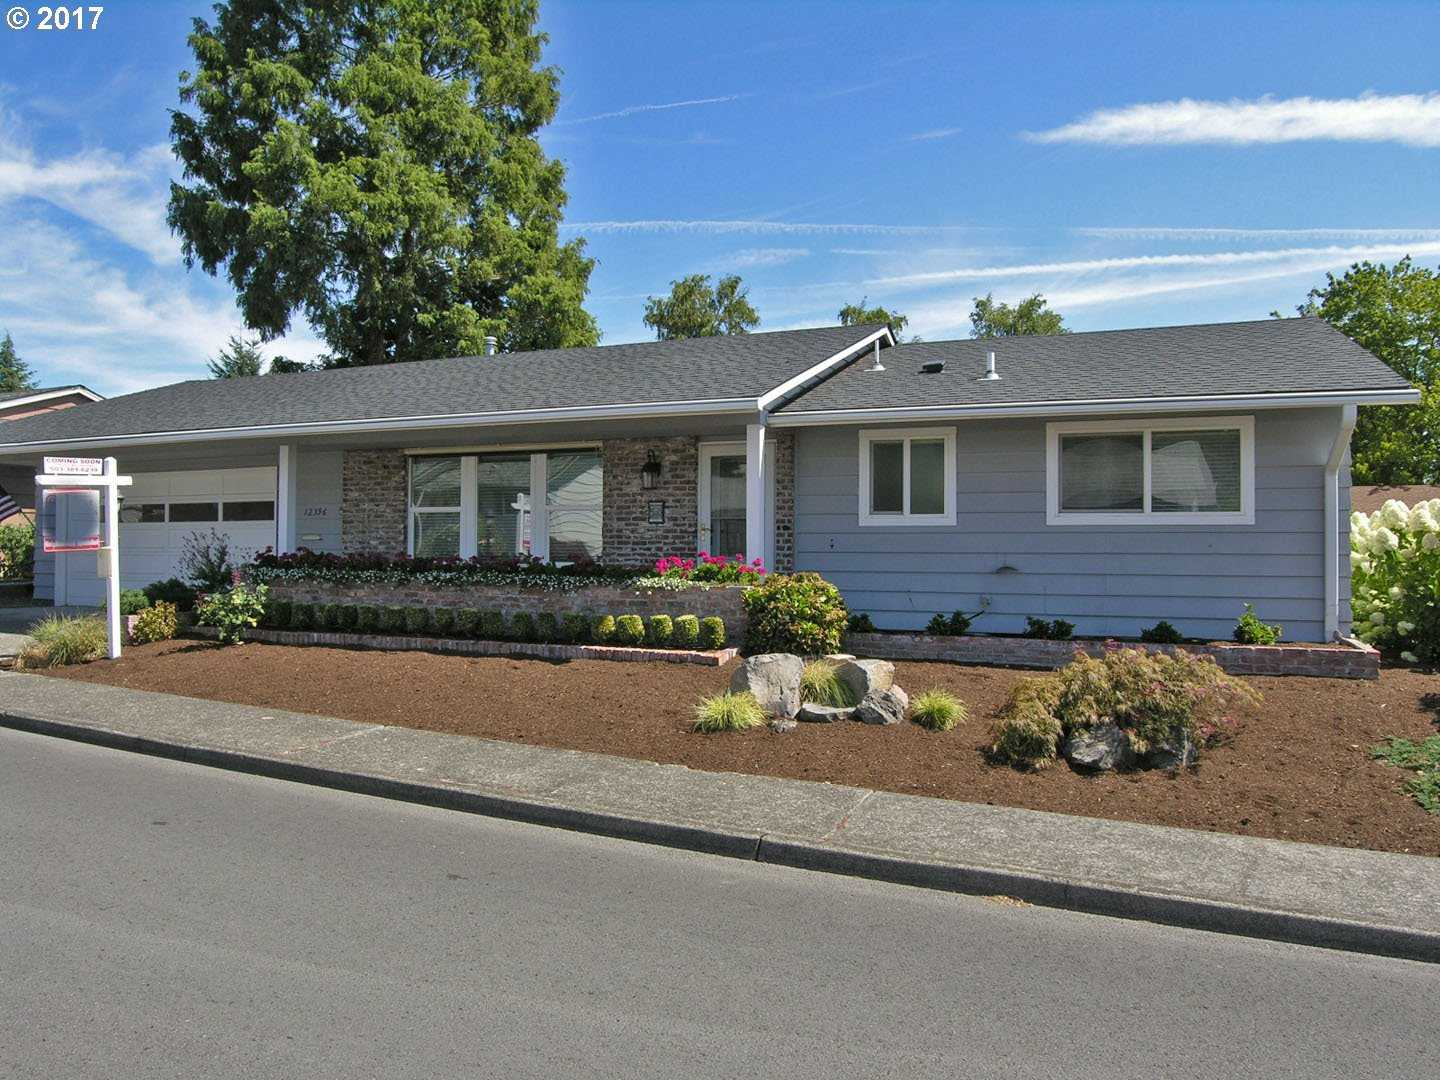 $329,000 - 2Br/1Ba -  for Sale in King City, King City